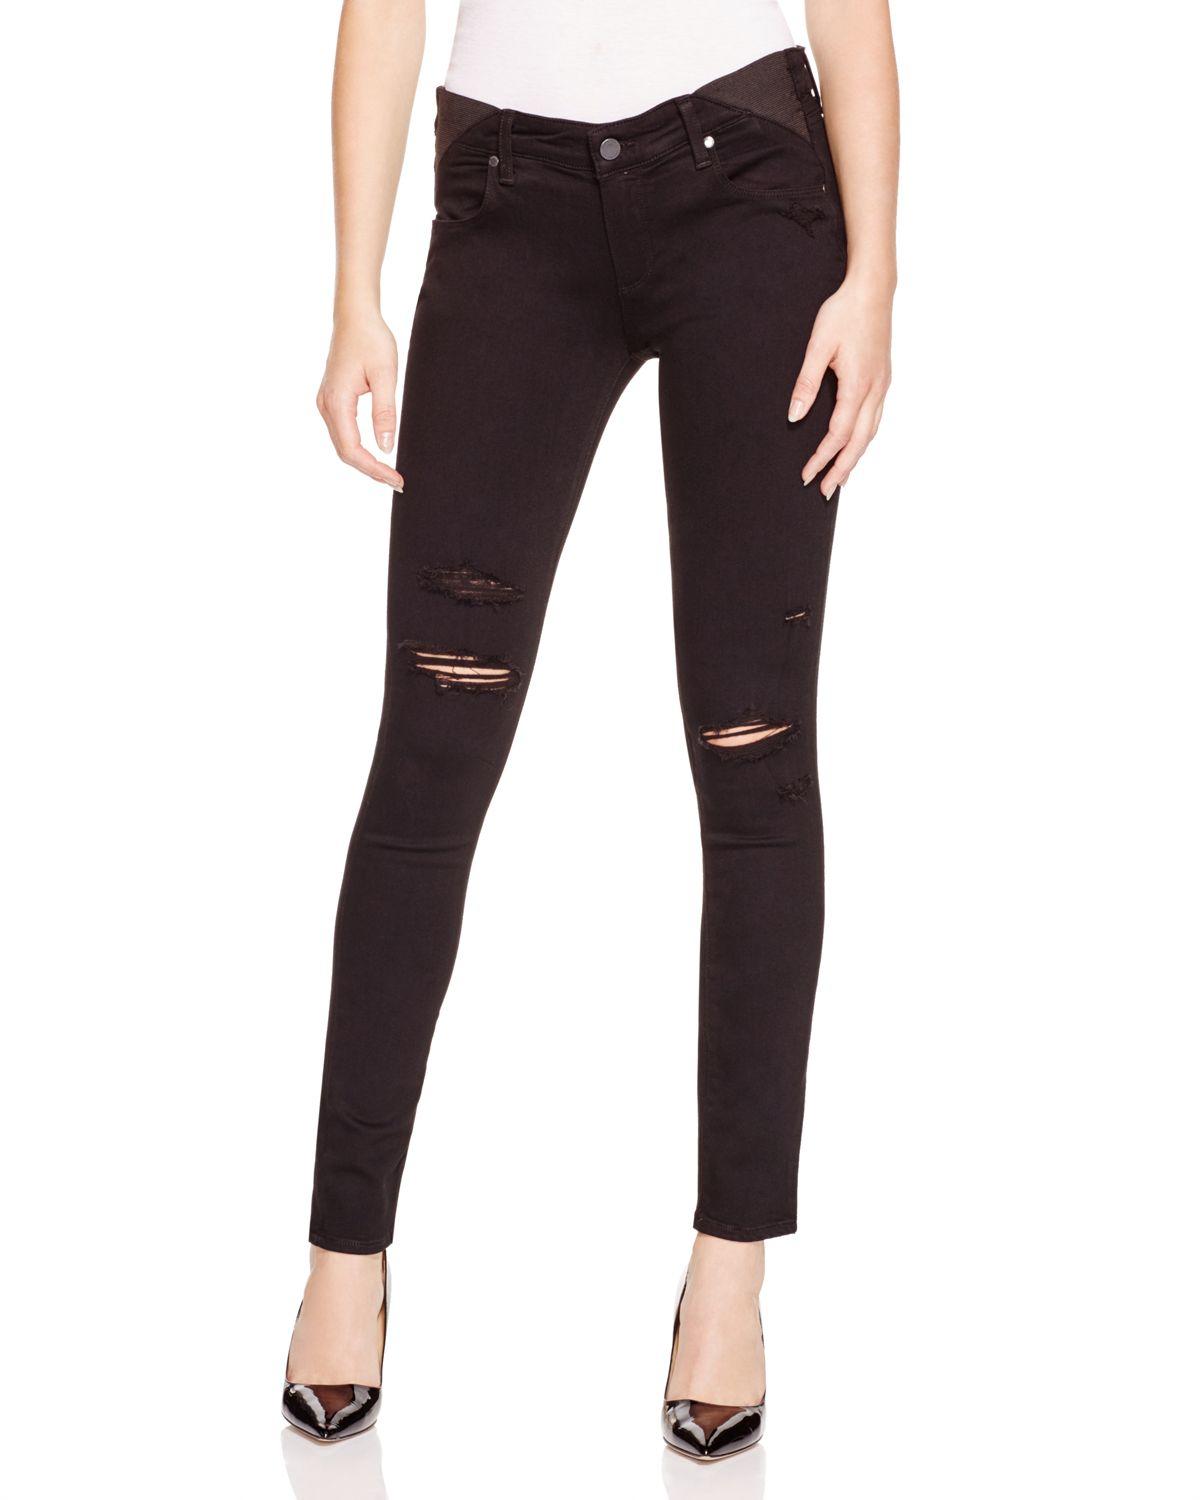 Black jeans maternity – Global fashion jeans collection